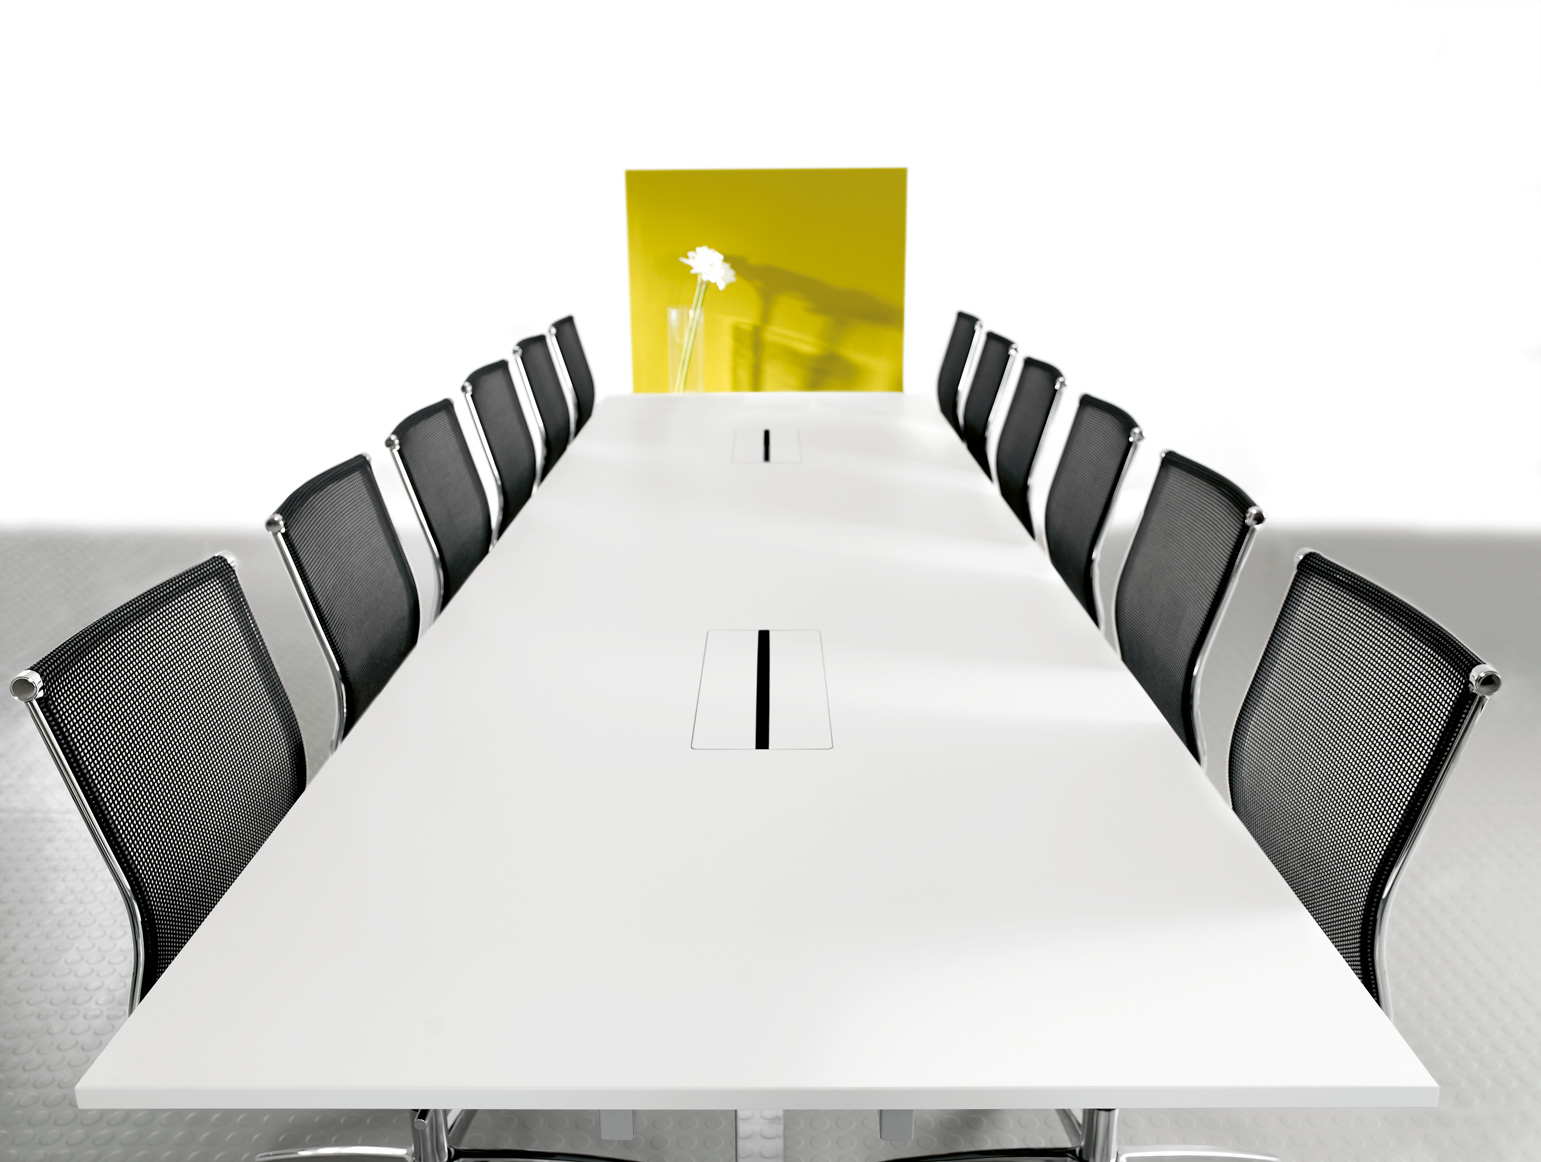 Clipart conference table black and white library Snitsa - Conference Tables   SA Möbler AB - Designed Office Furniture black and white library